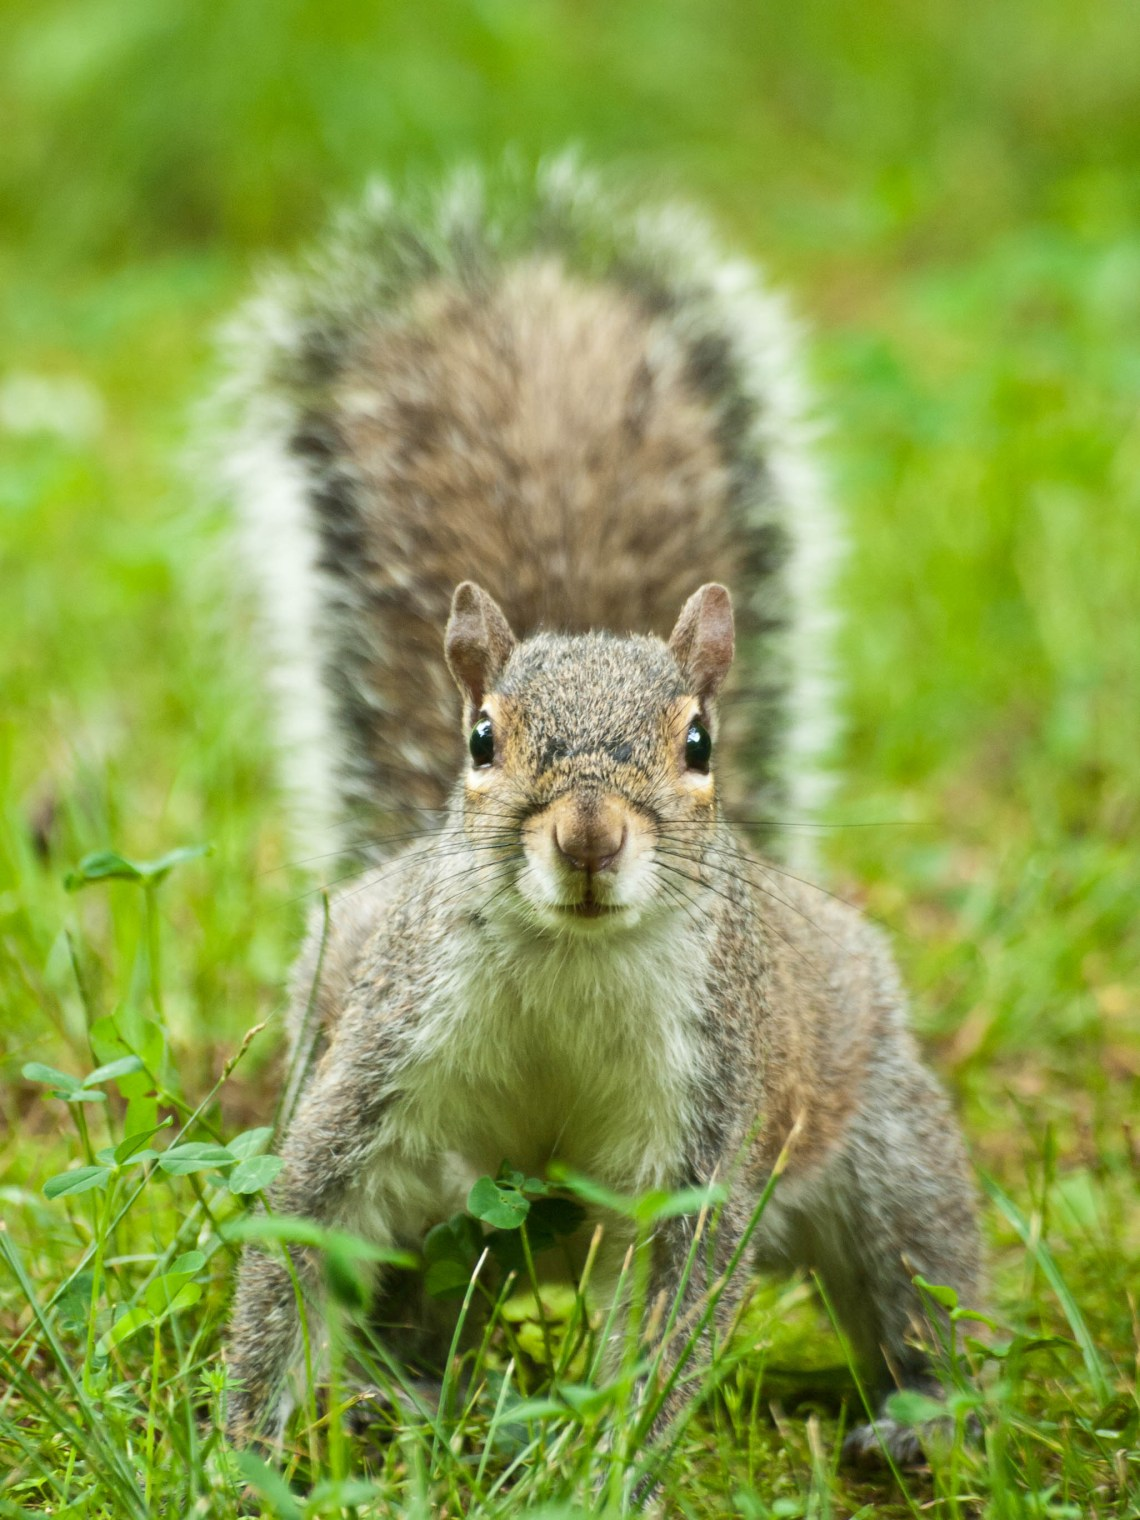 Squirrel at Montgomery Bell State Park in Dickson, County, Tennessee